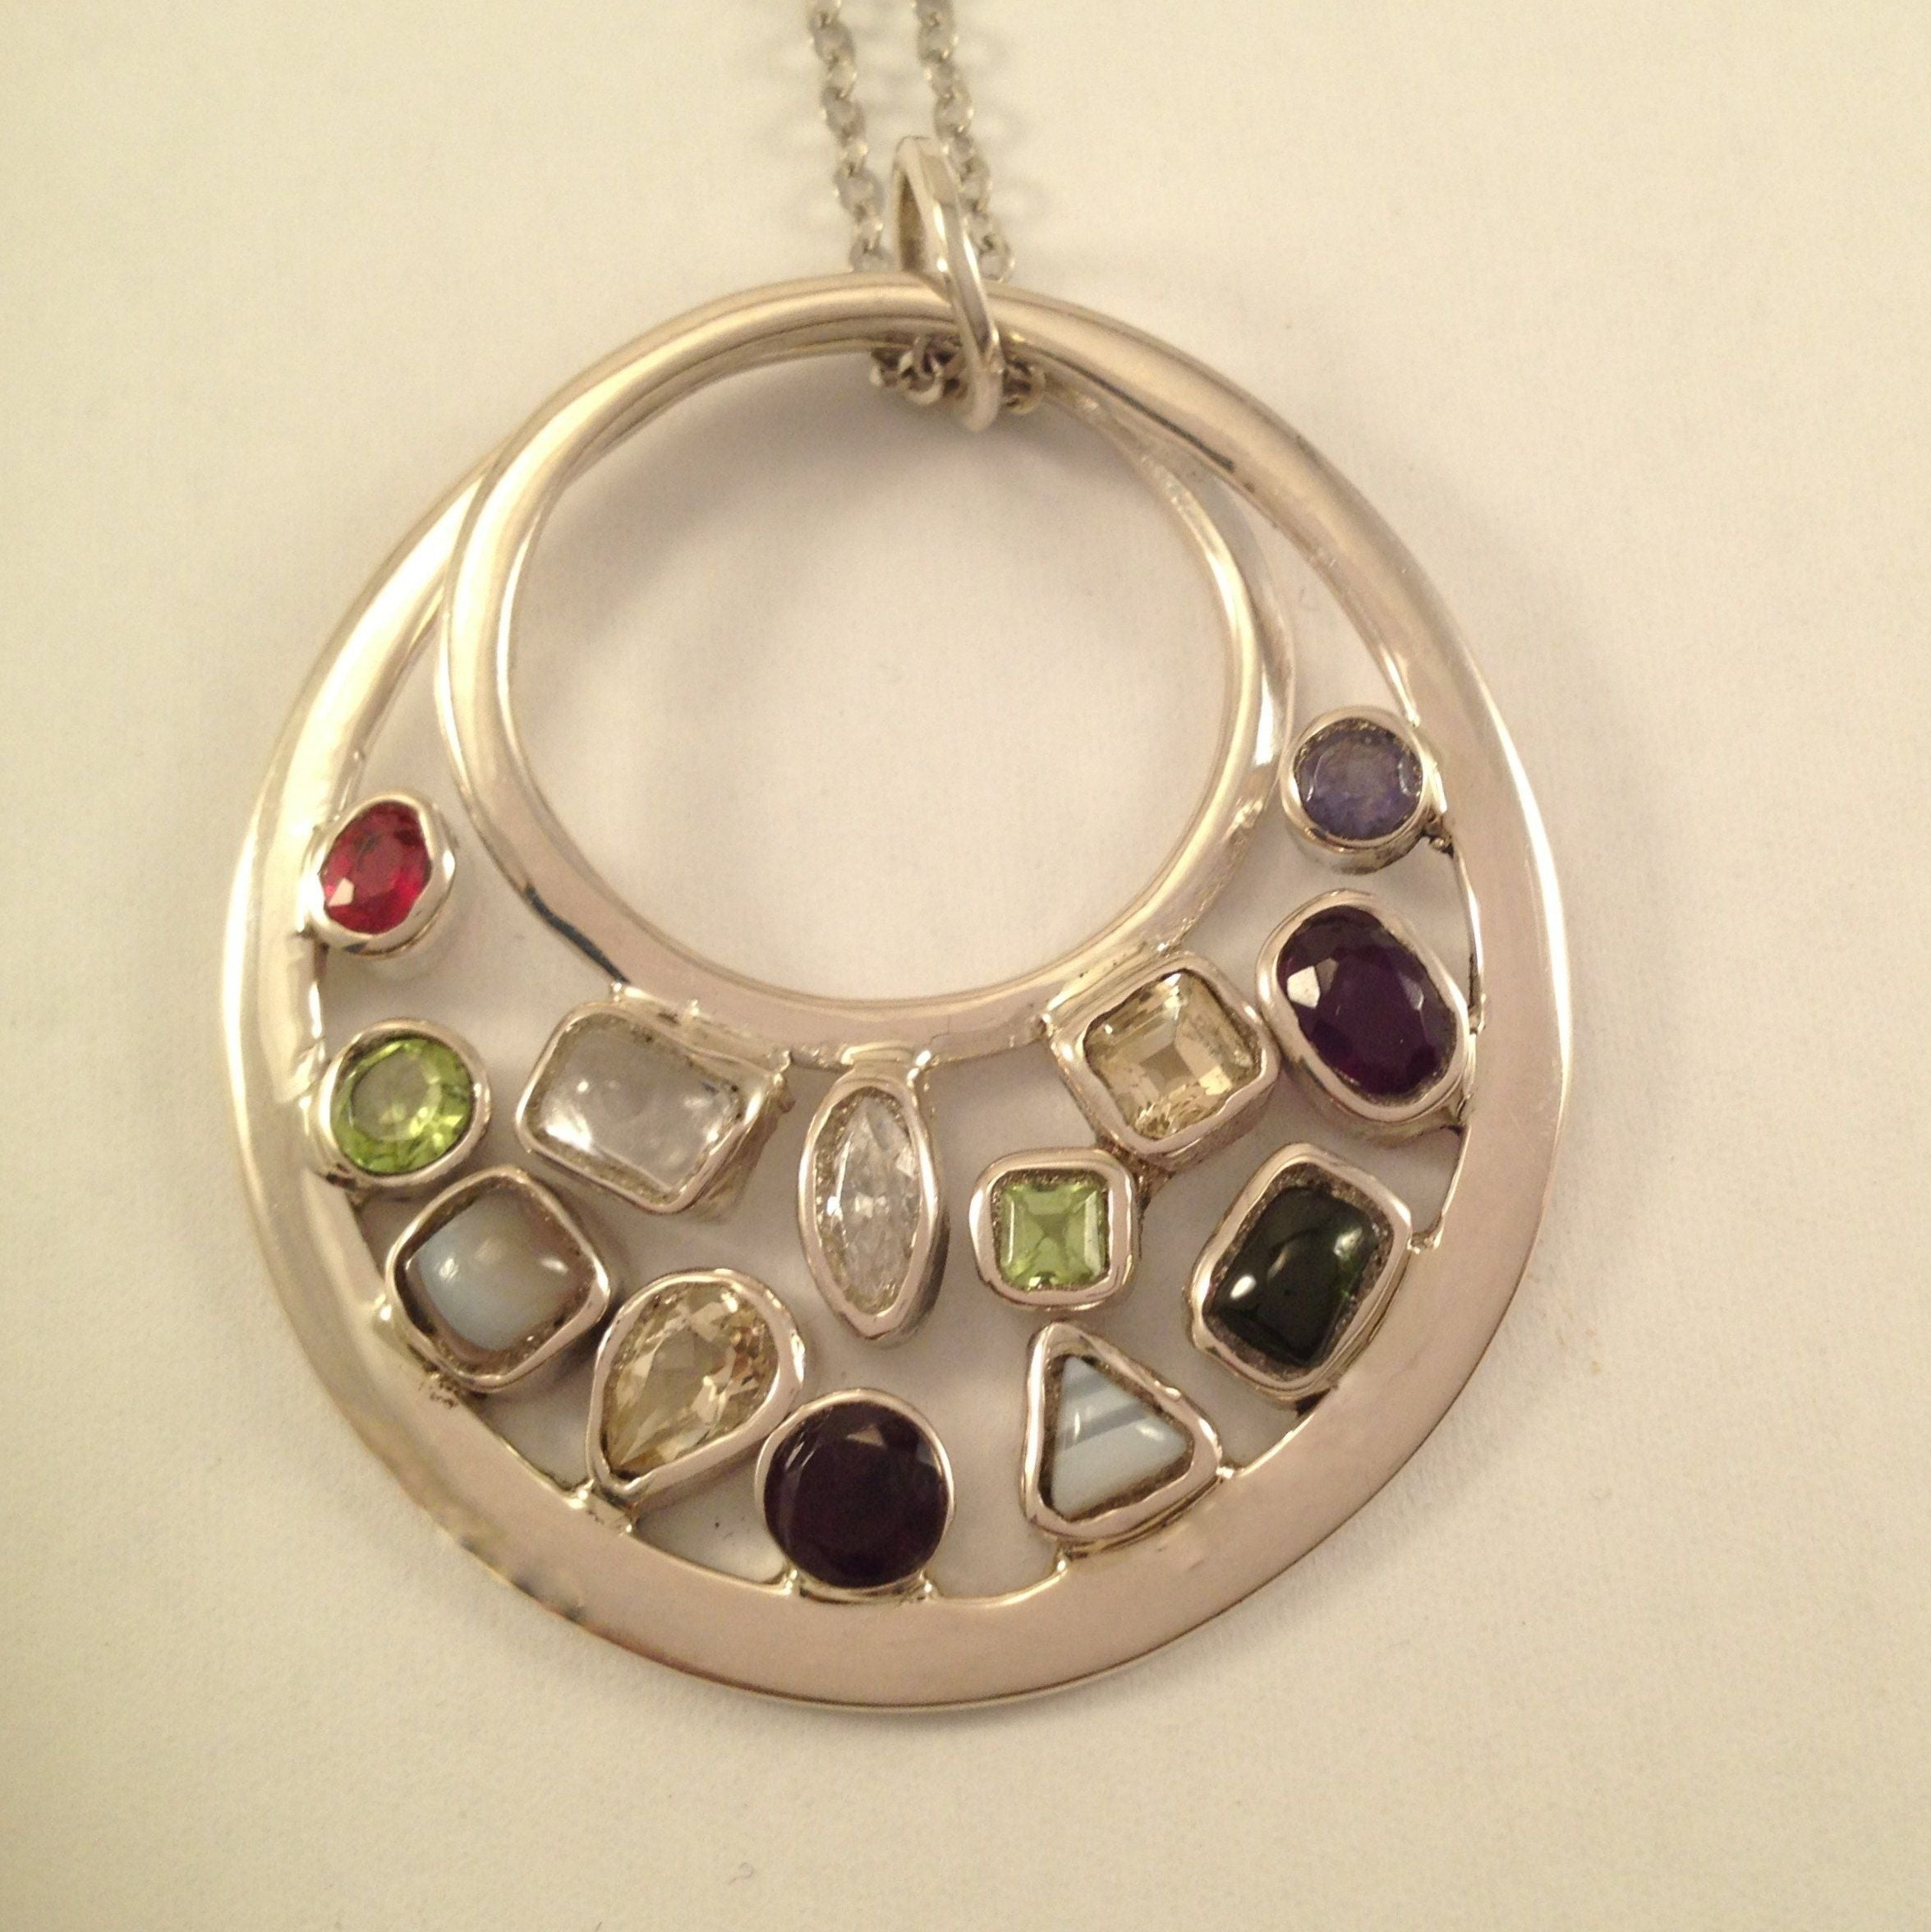 Infinity Family Birthstone Pendant and Chain